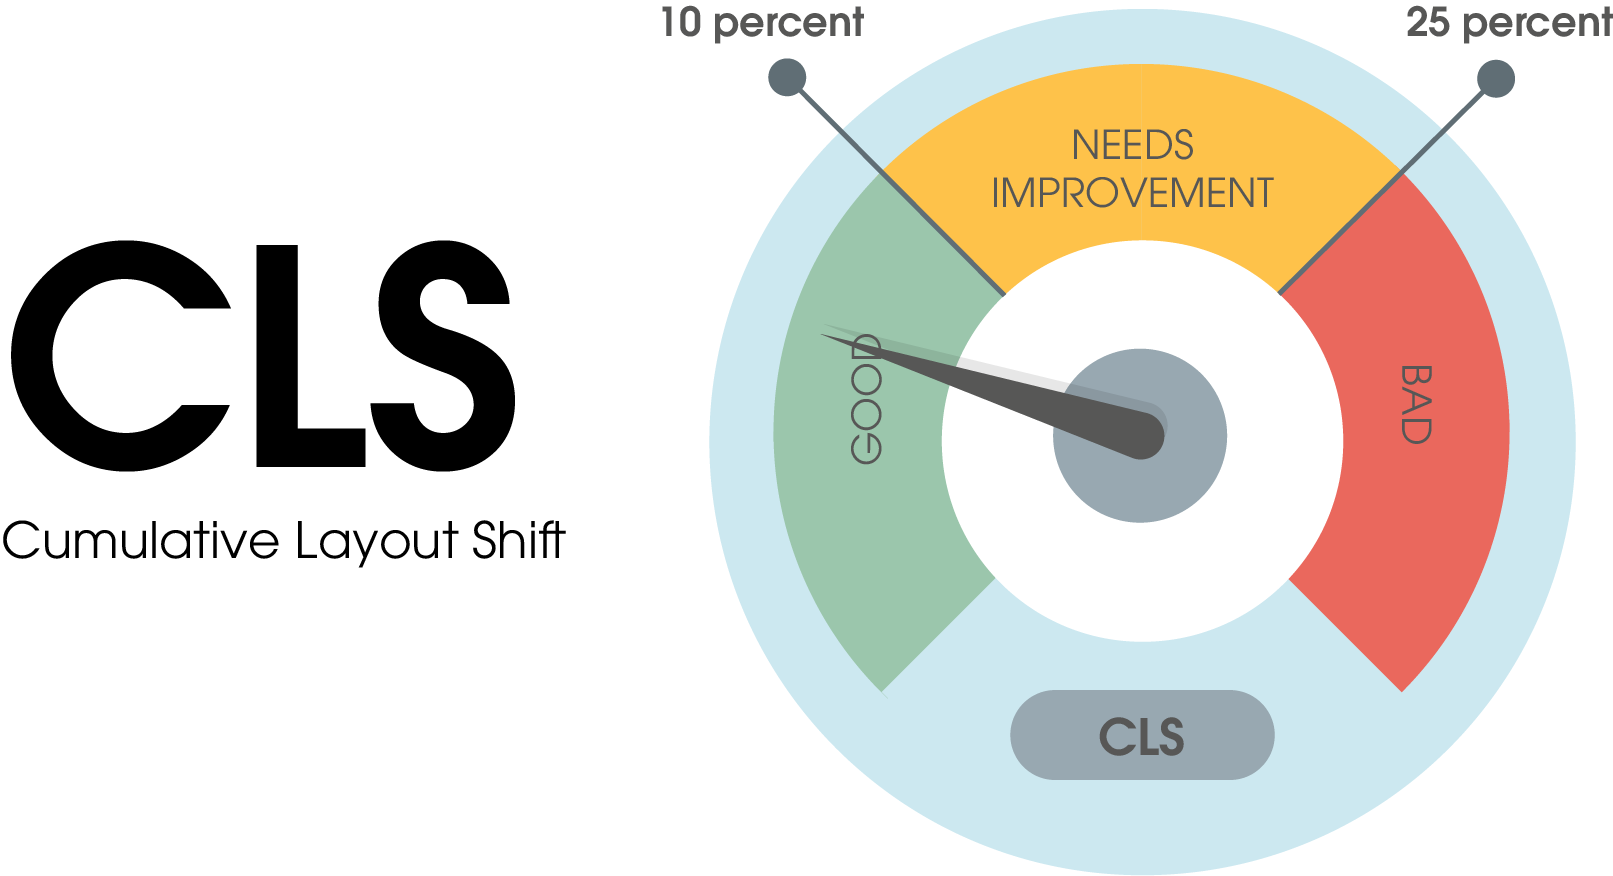 The CLS (cumulative layout shift) score is divided into three ranges: 1. good: 0 to 10 percent shift. 2. in need of optimization: 10 to 25 percent shift 3. bad: 25 percent shift and more